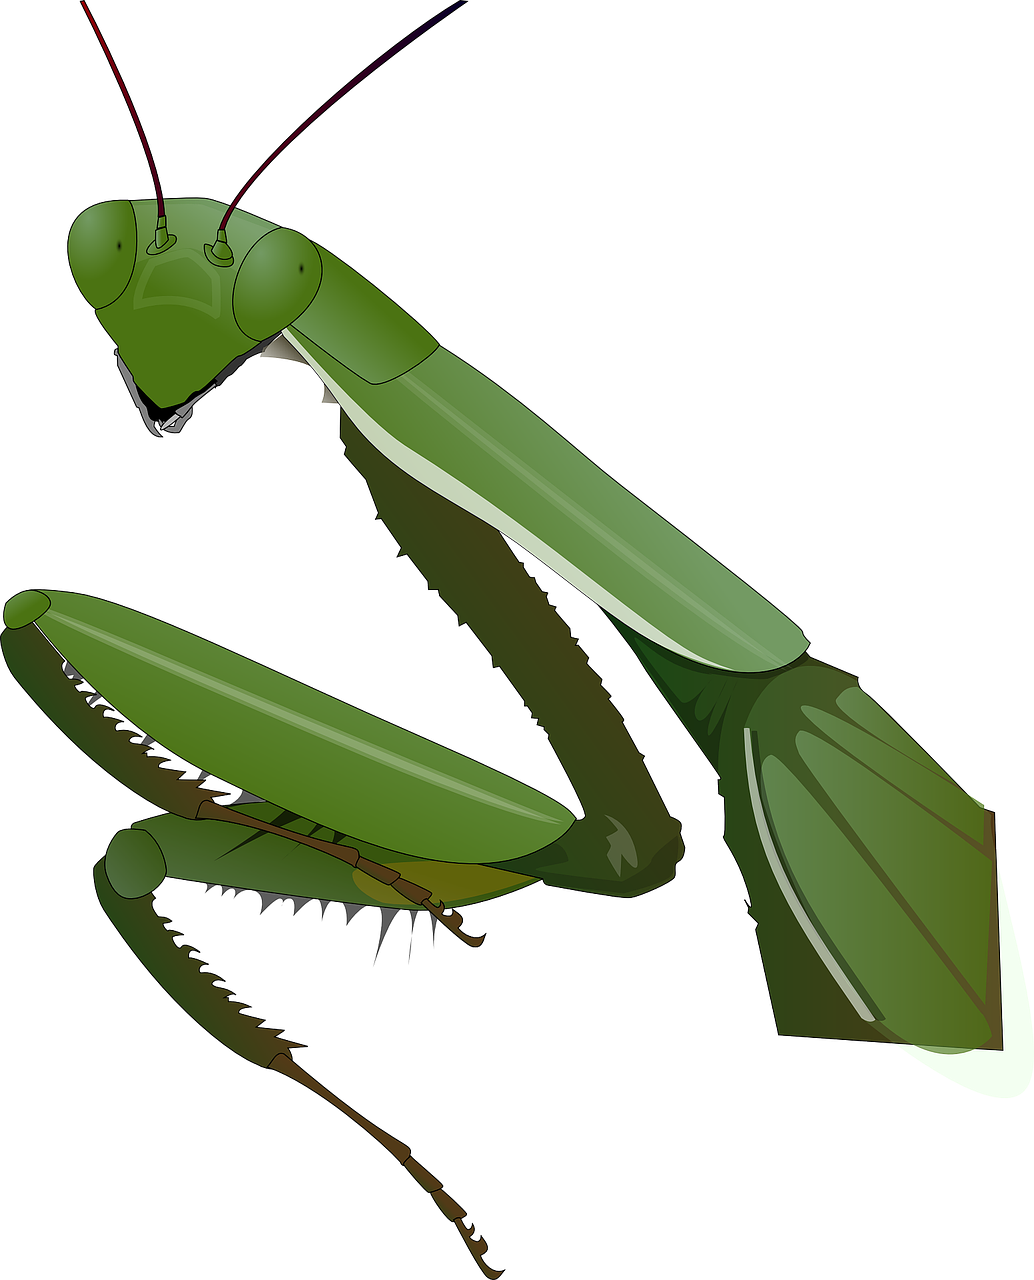 Insects clipart praying mantis. Insect nature transparent image